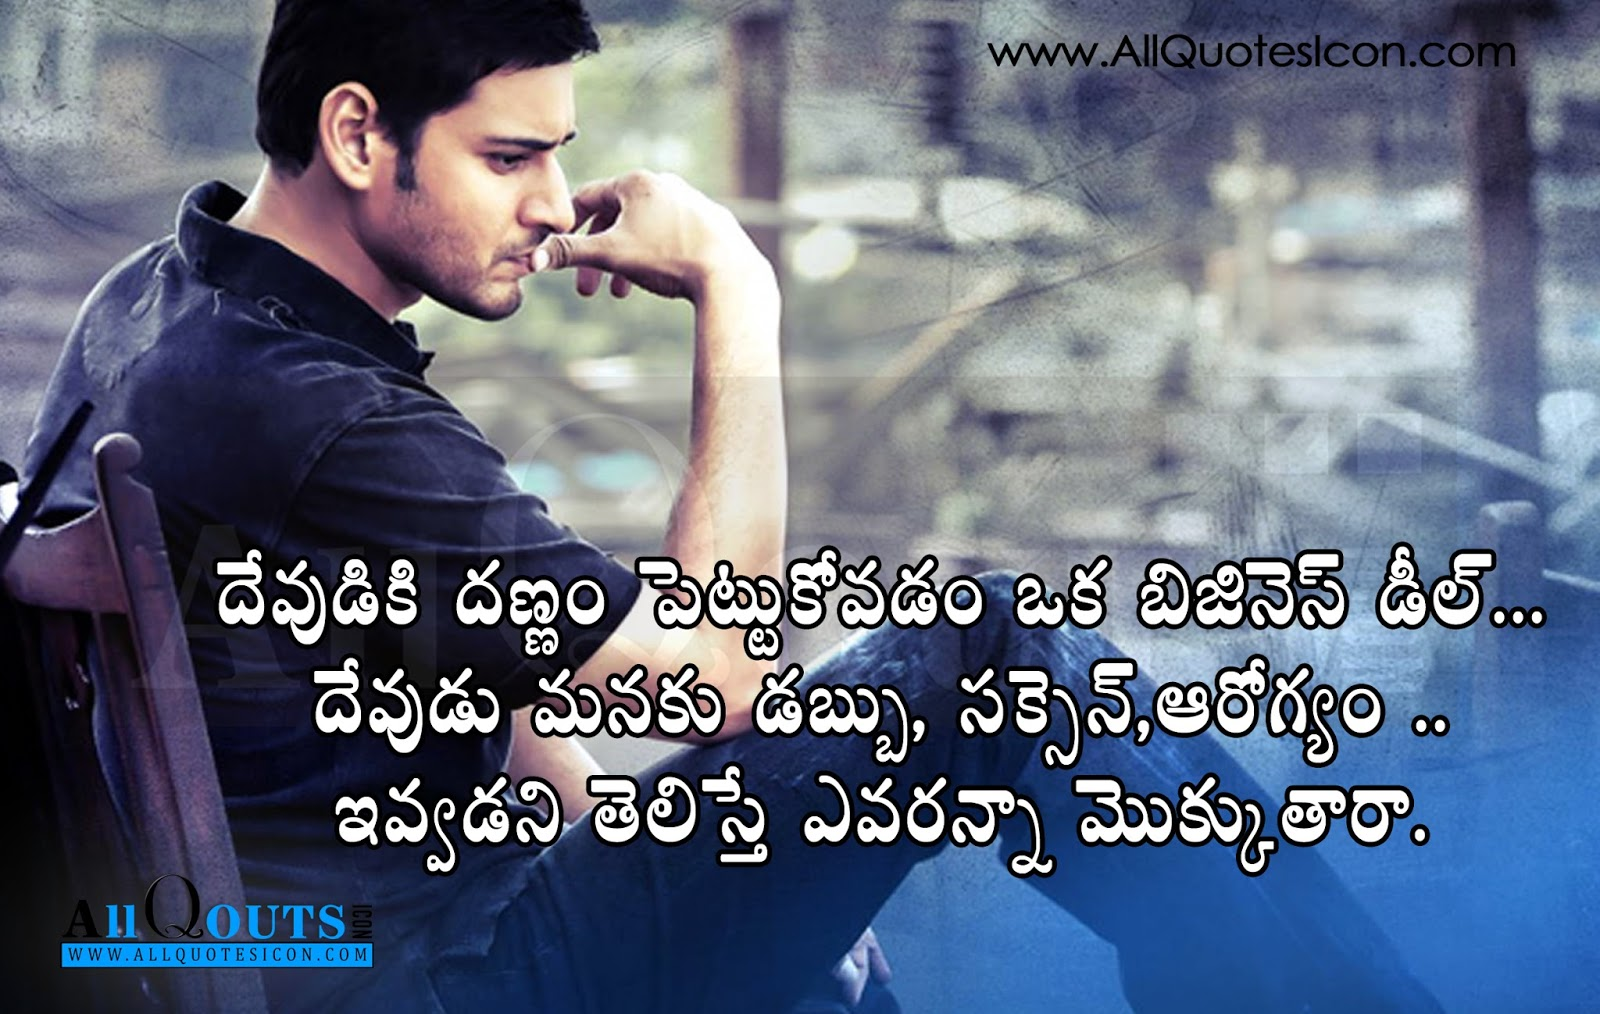 businessman movie dialogues 7 wallpapers best mahesh babu punch dialogues in telugu images